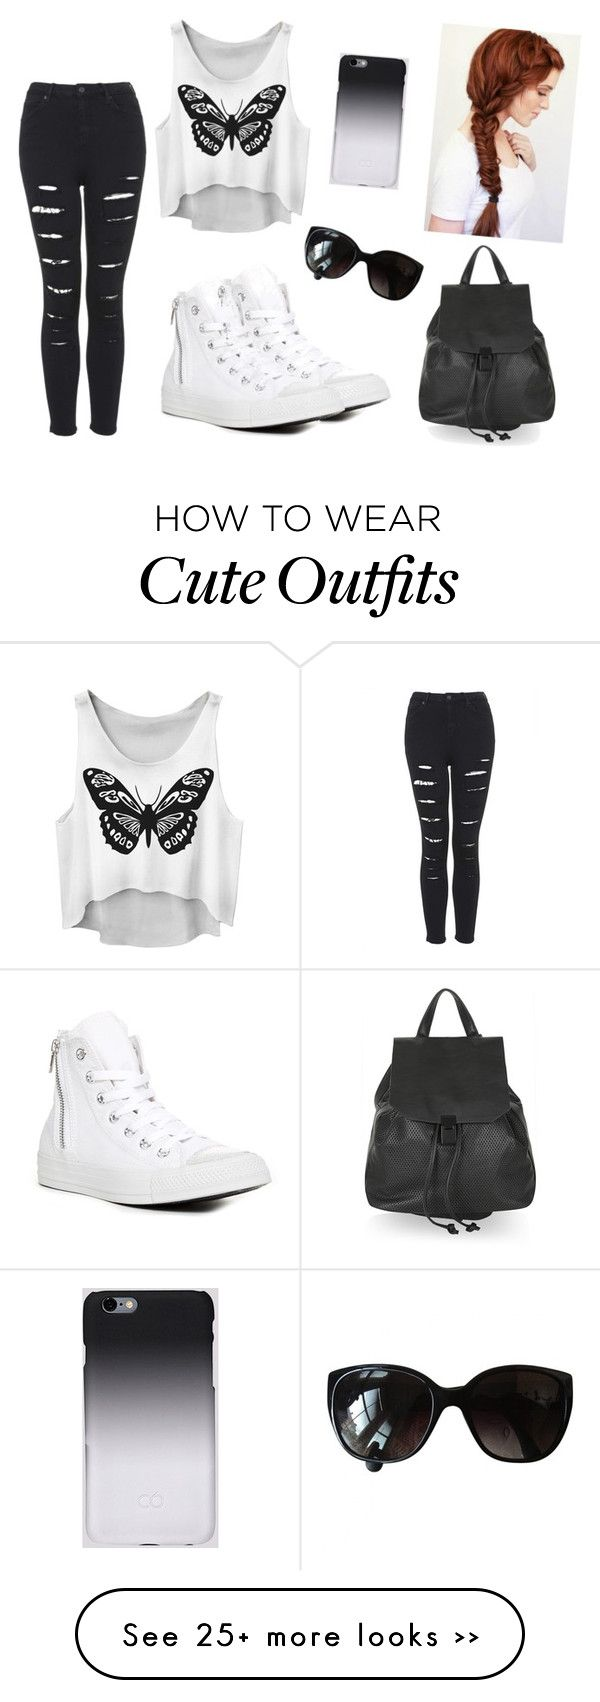 """""""Outfit #10"""" by catytomlinson95 on Polyvore"""